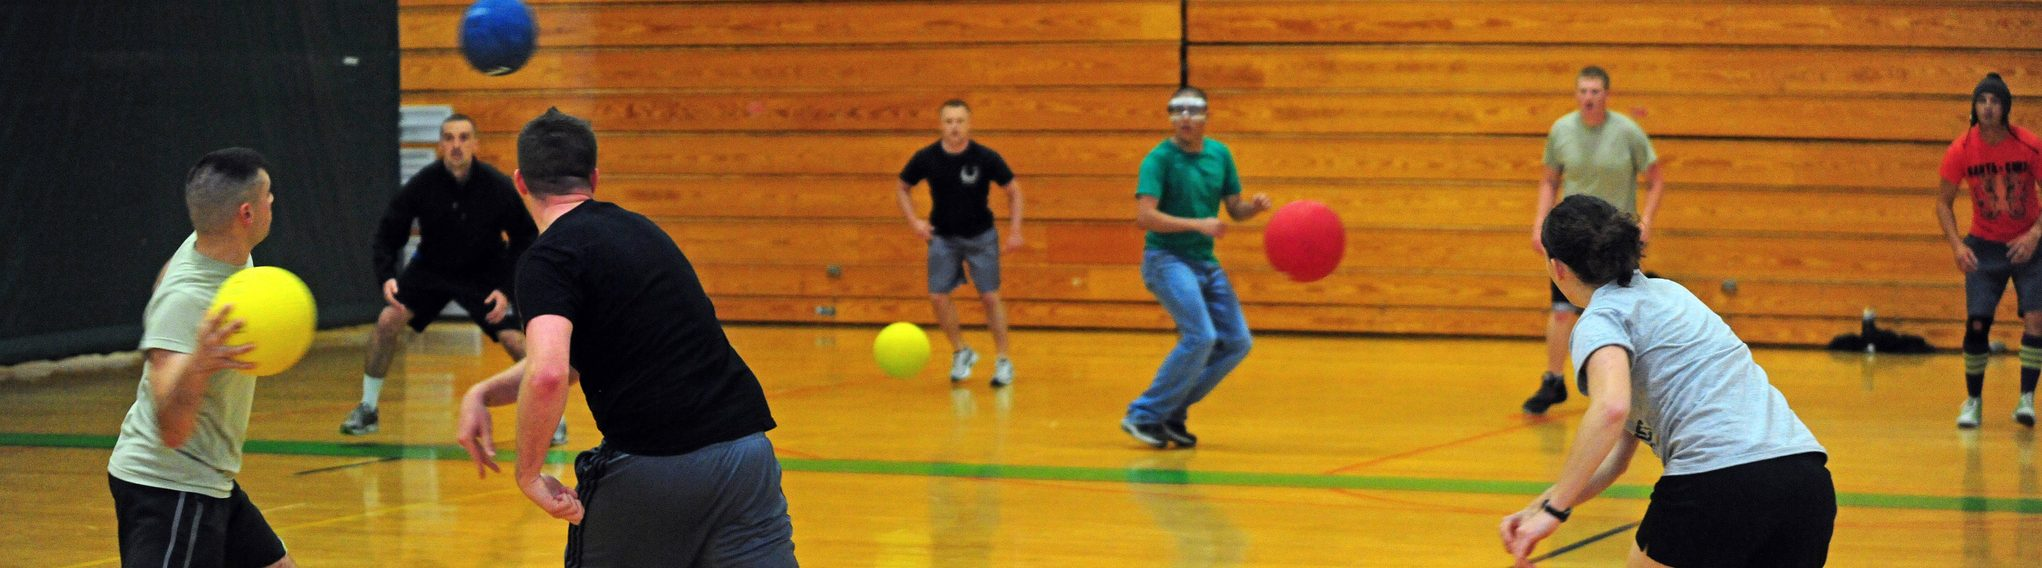 People playing dodgeball with man with blackshirt making a throw